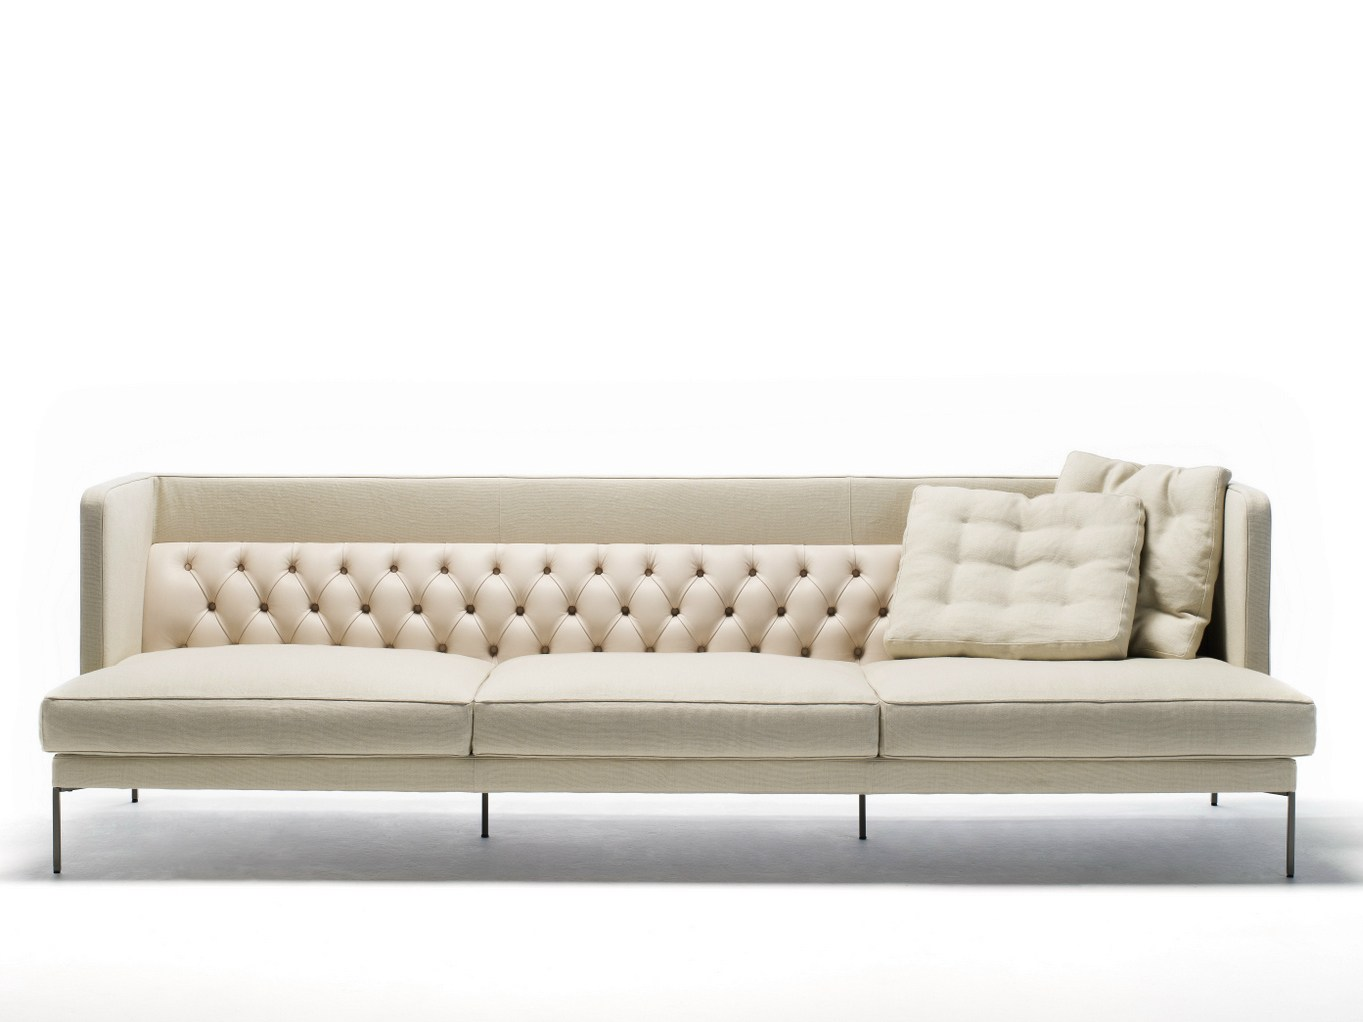 Lipp divano by living divani design piero lissoni for Sofa divano